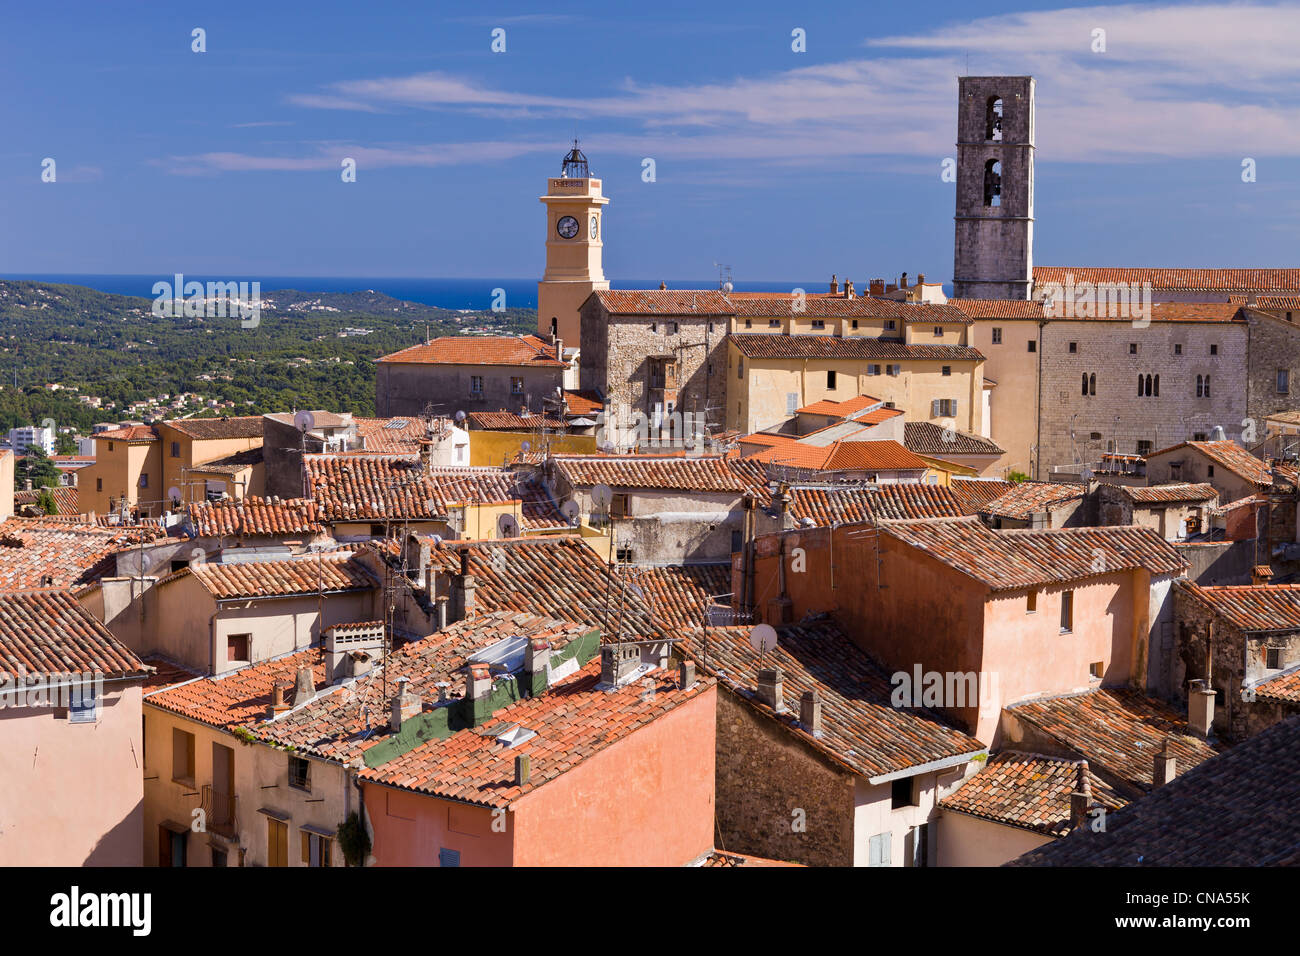 France, Alpes Maritimes, Grasse, tour of clock and cathedral Notre Dame du Puy with a view of the Mediterranee sea Stock Photo